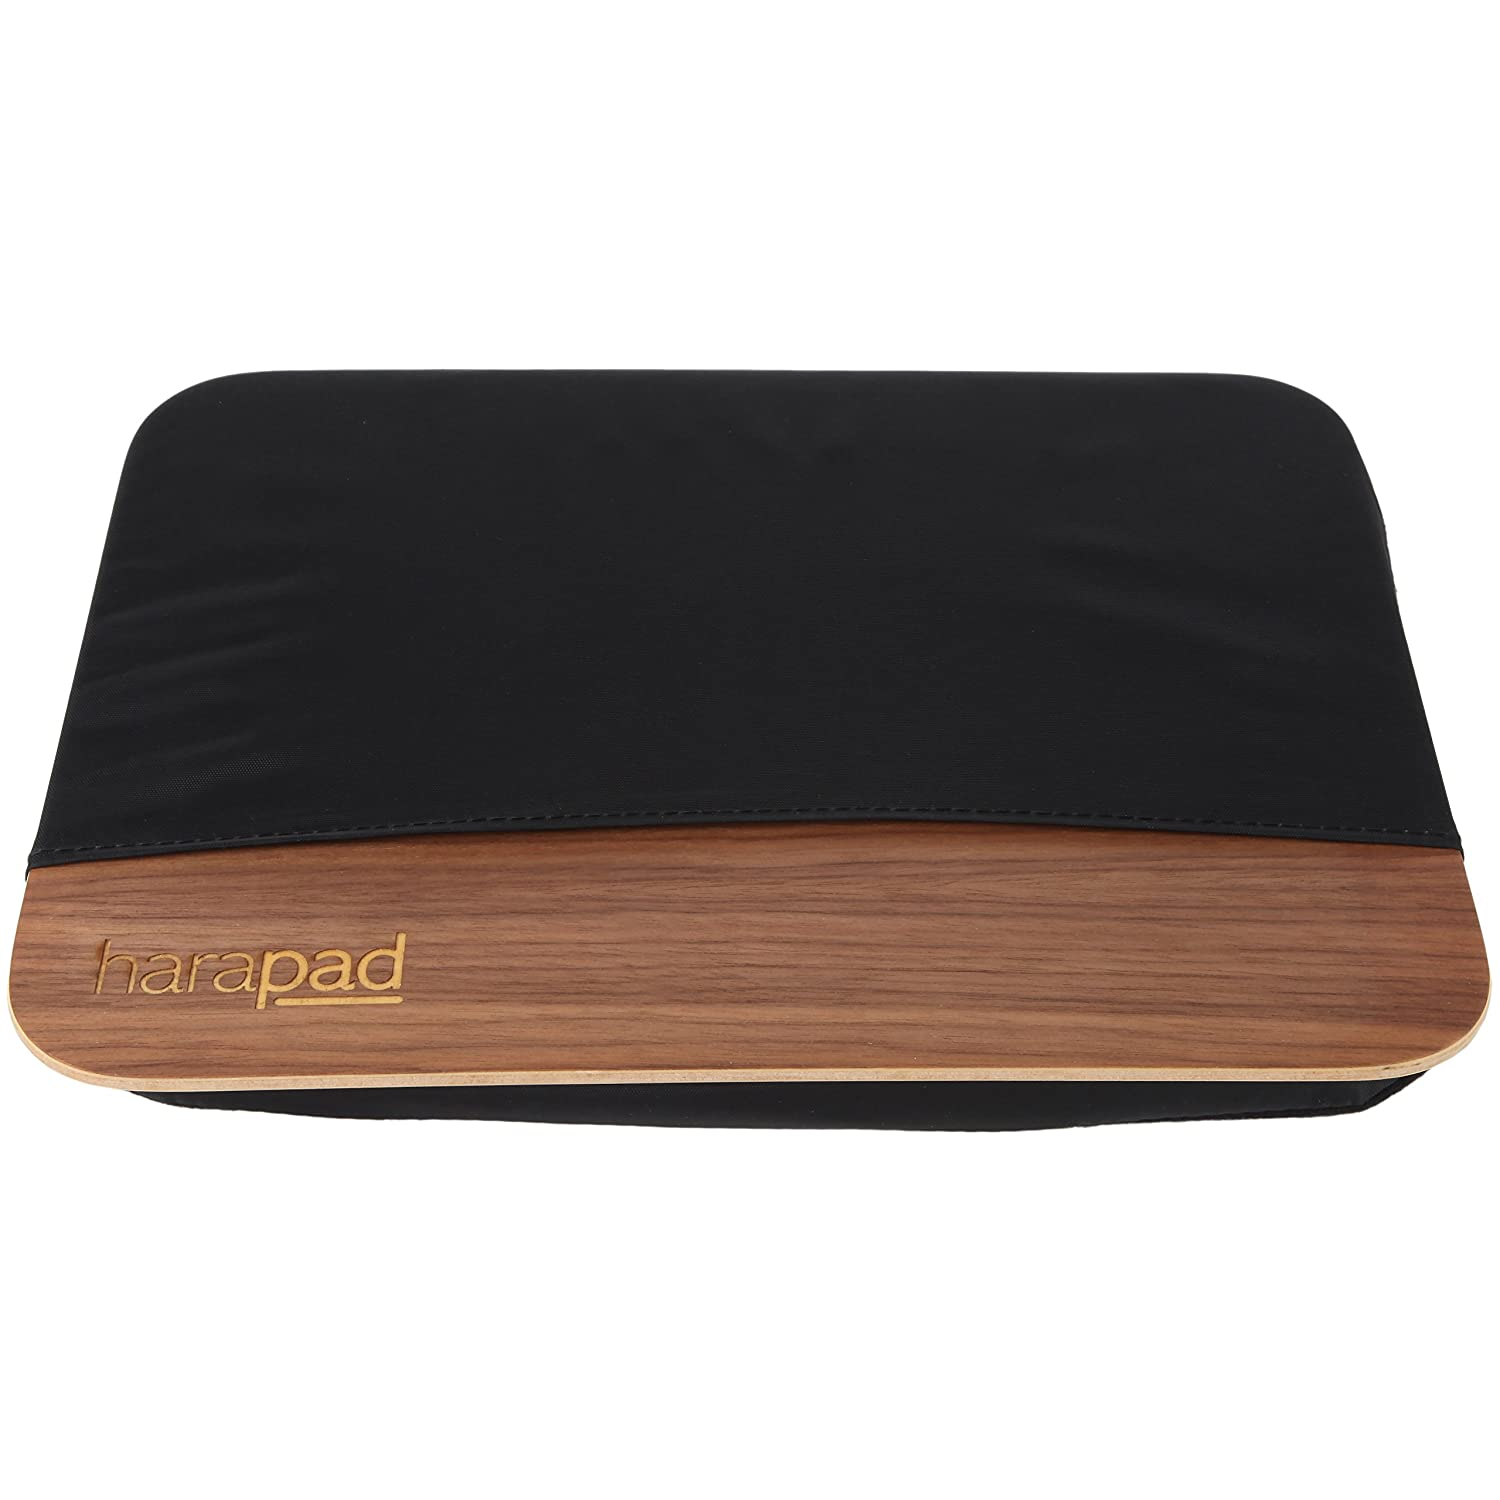 Comfort Cushion for 15 Laptop EMF Pad Made for HARApad.